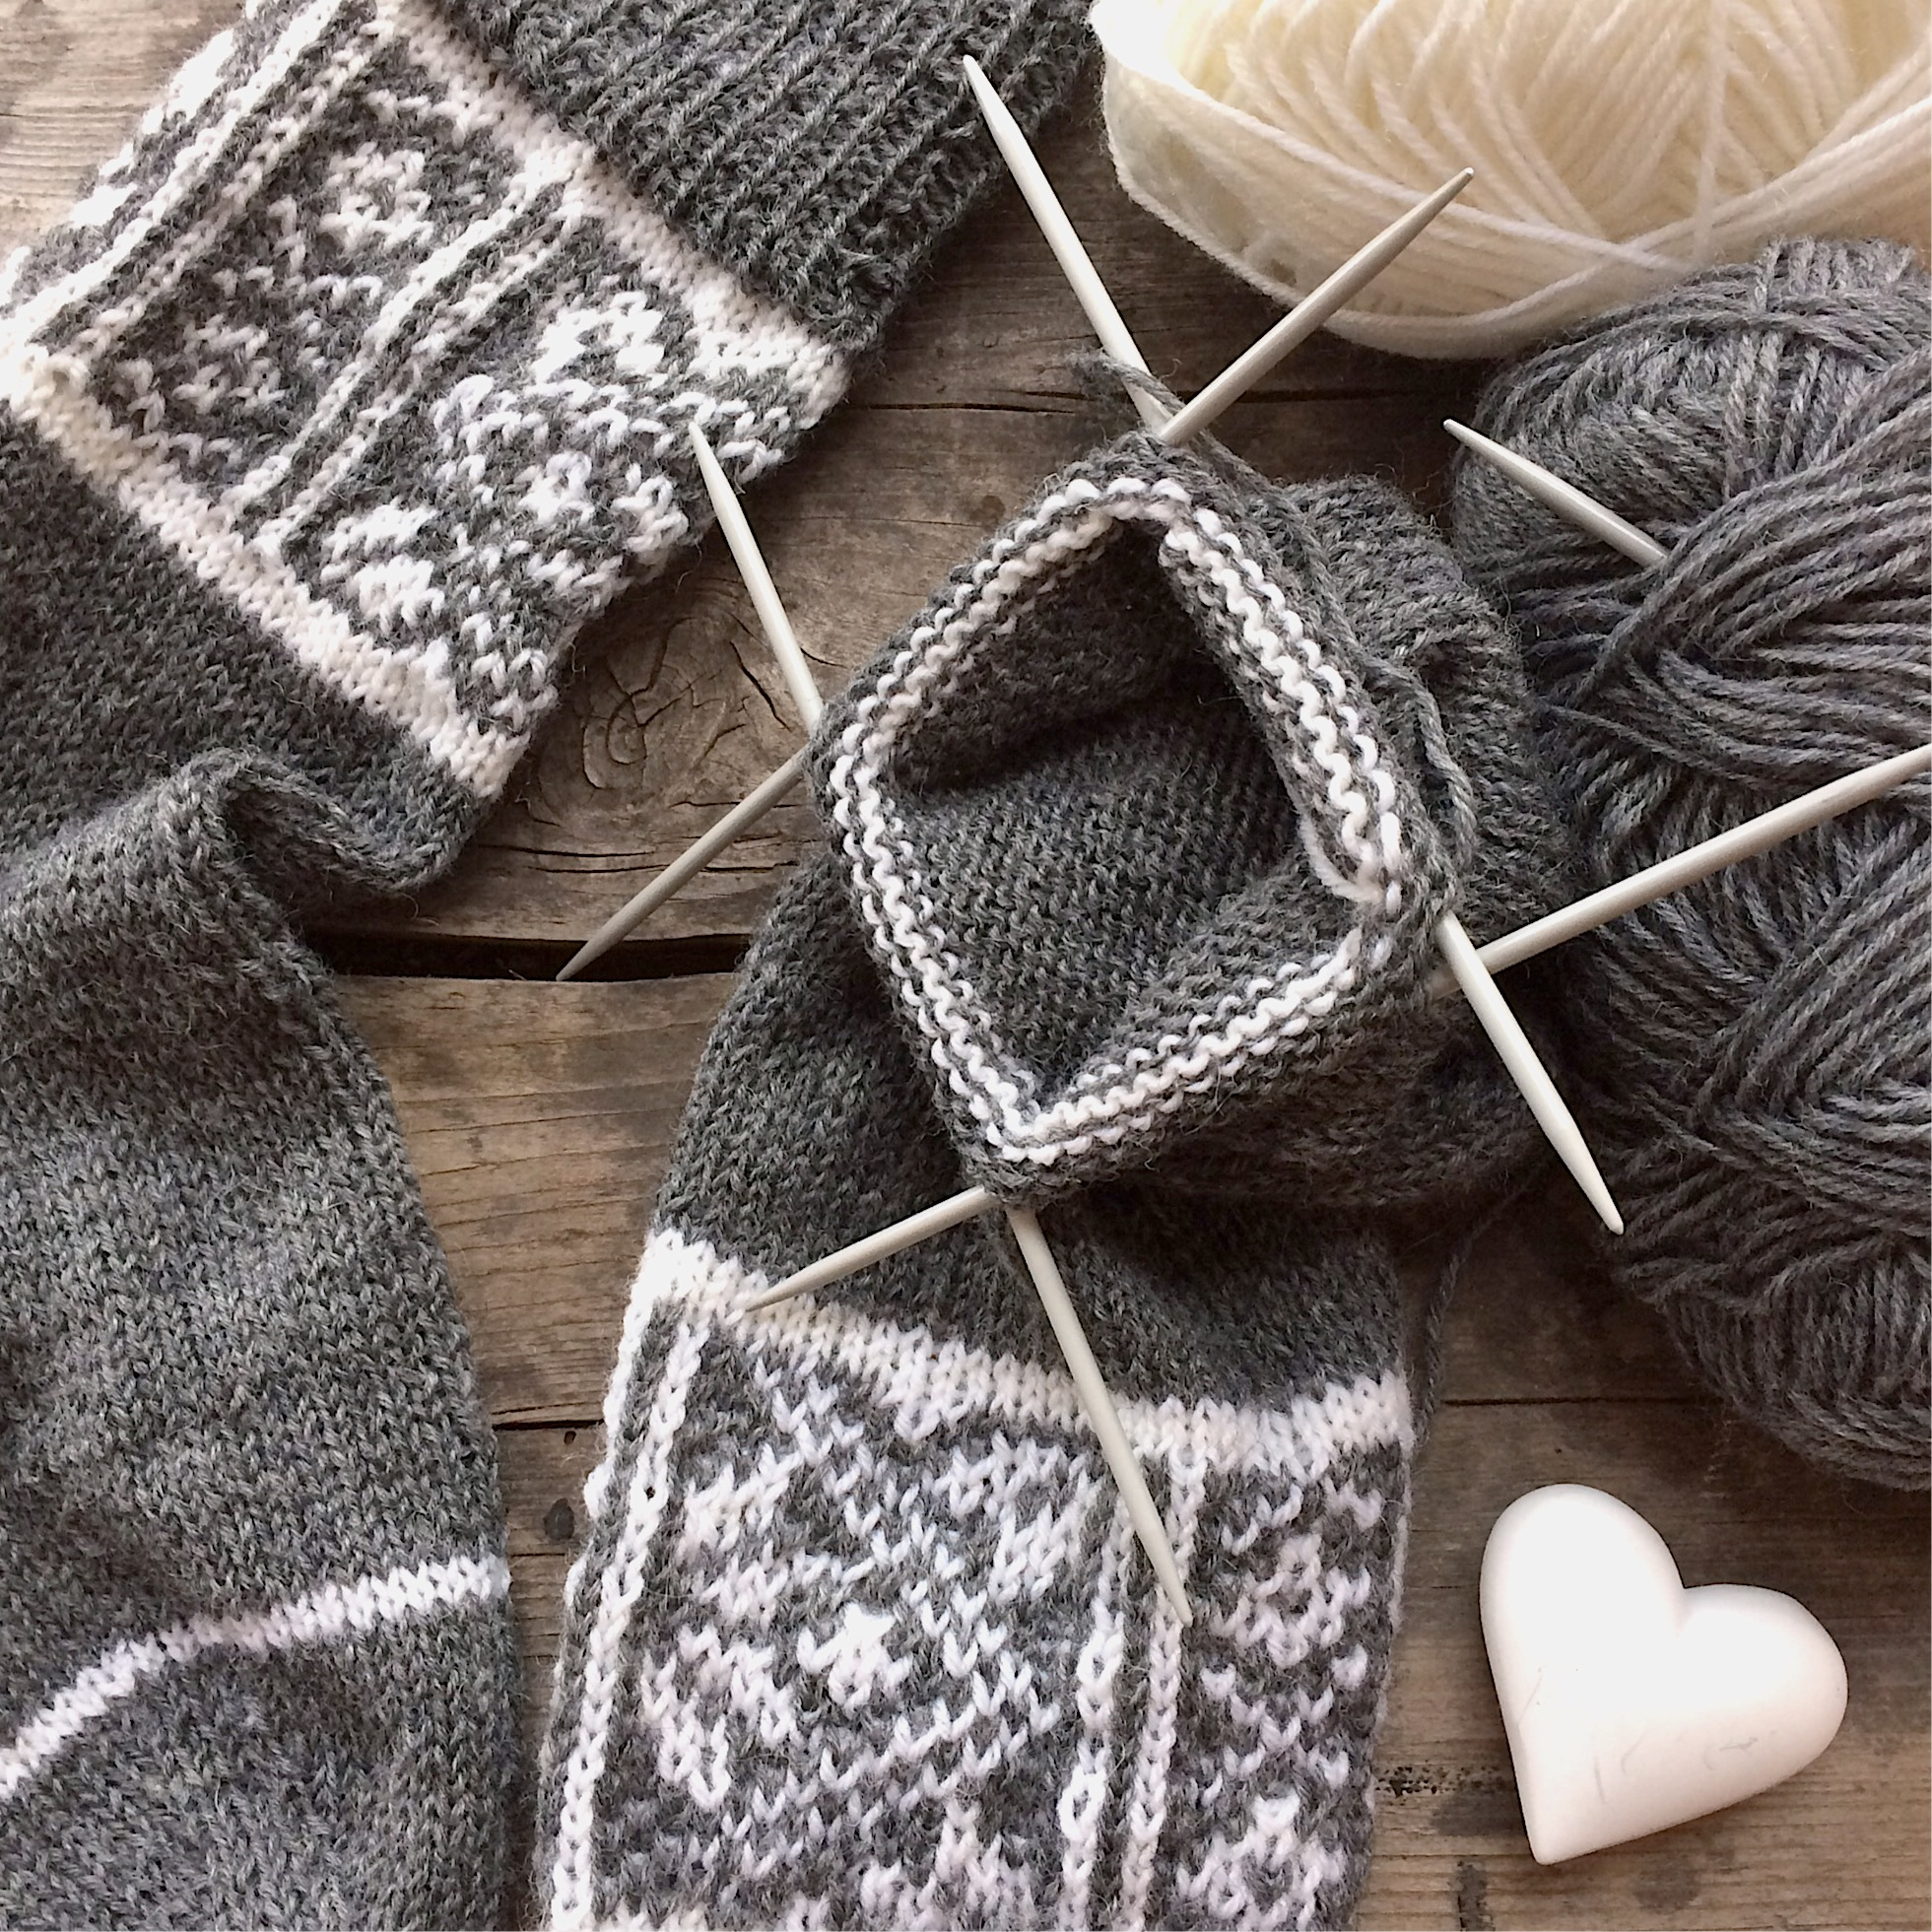 fair isle socken stricken norweger strickmuster anleitung glutenfreie rezepte kreative ideen. Black Bedroom Furniture Sets. Home Design Ideas